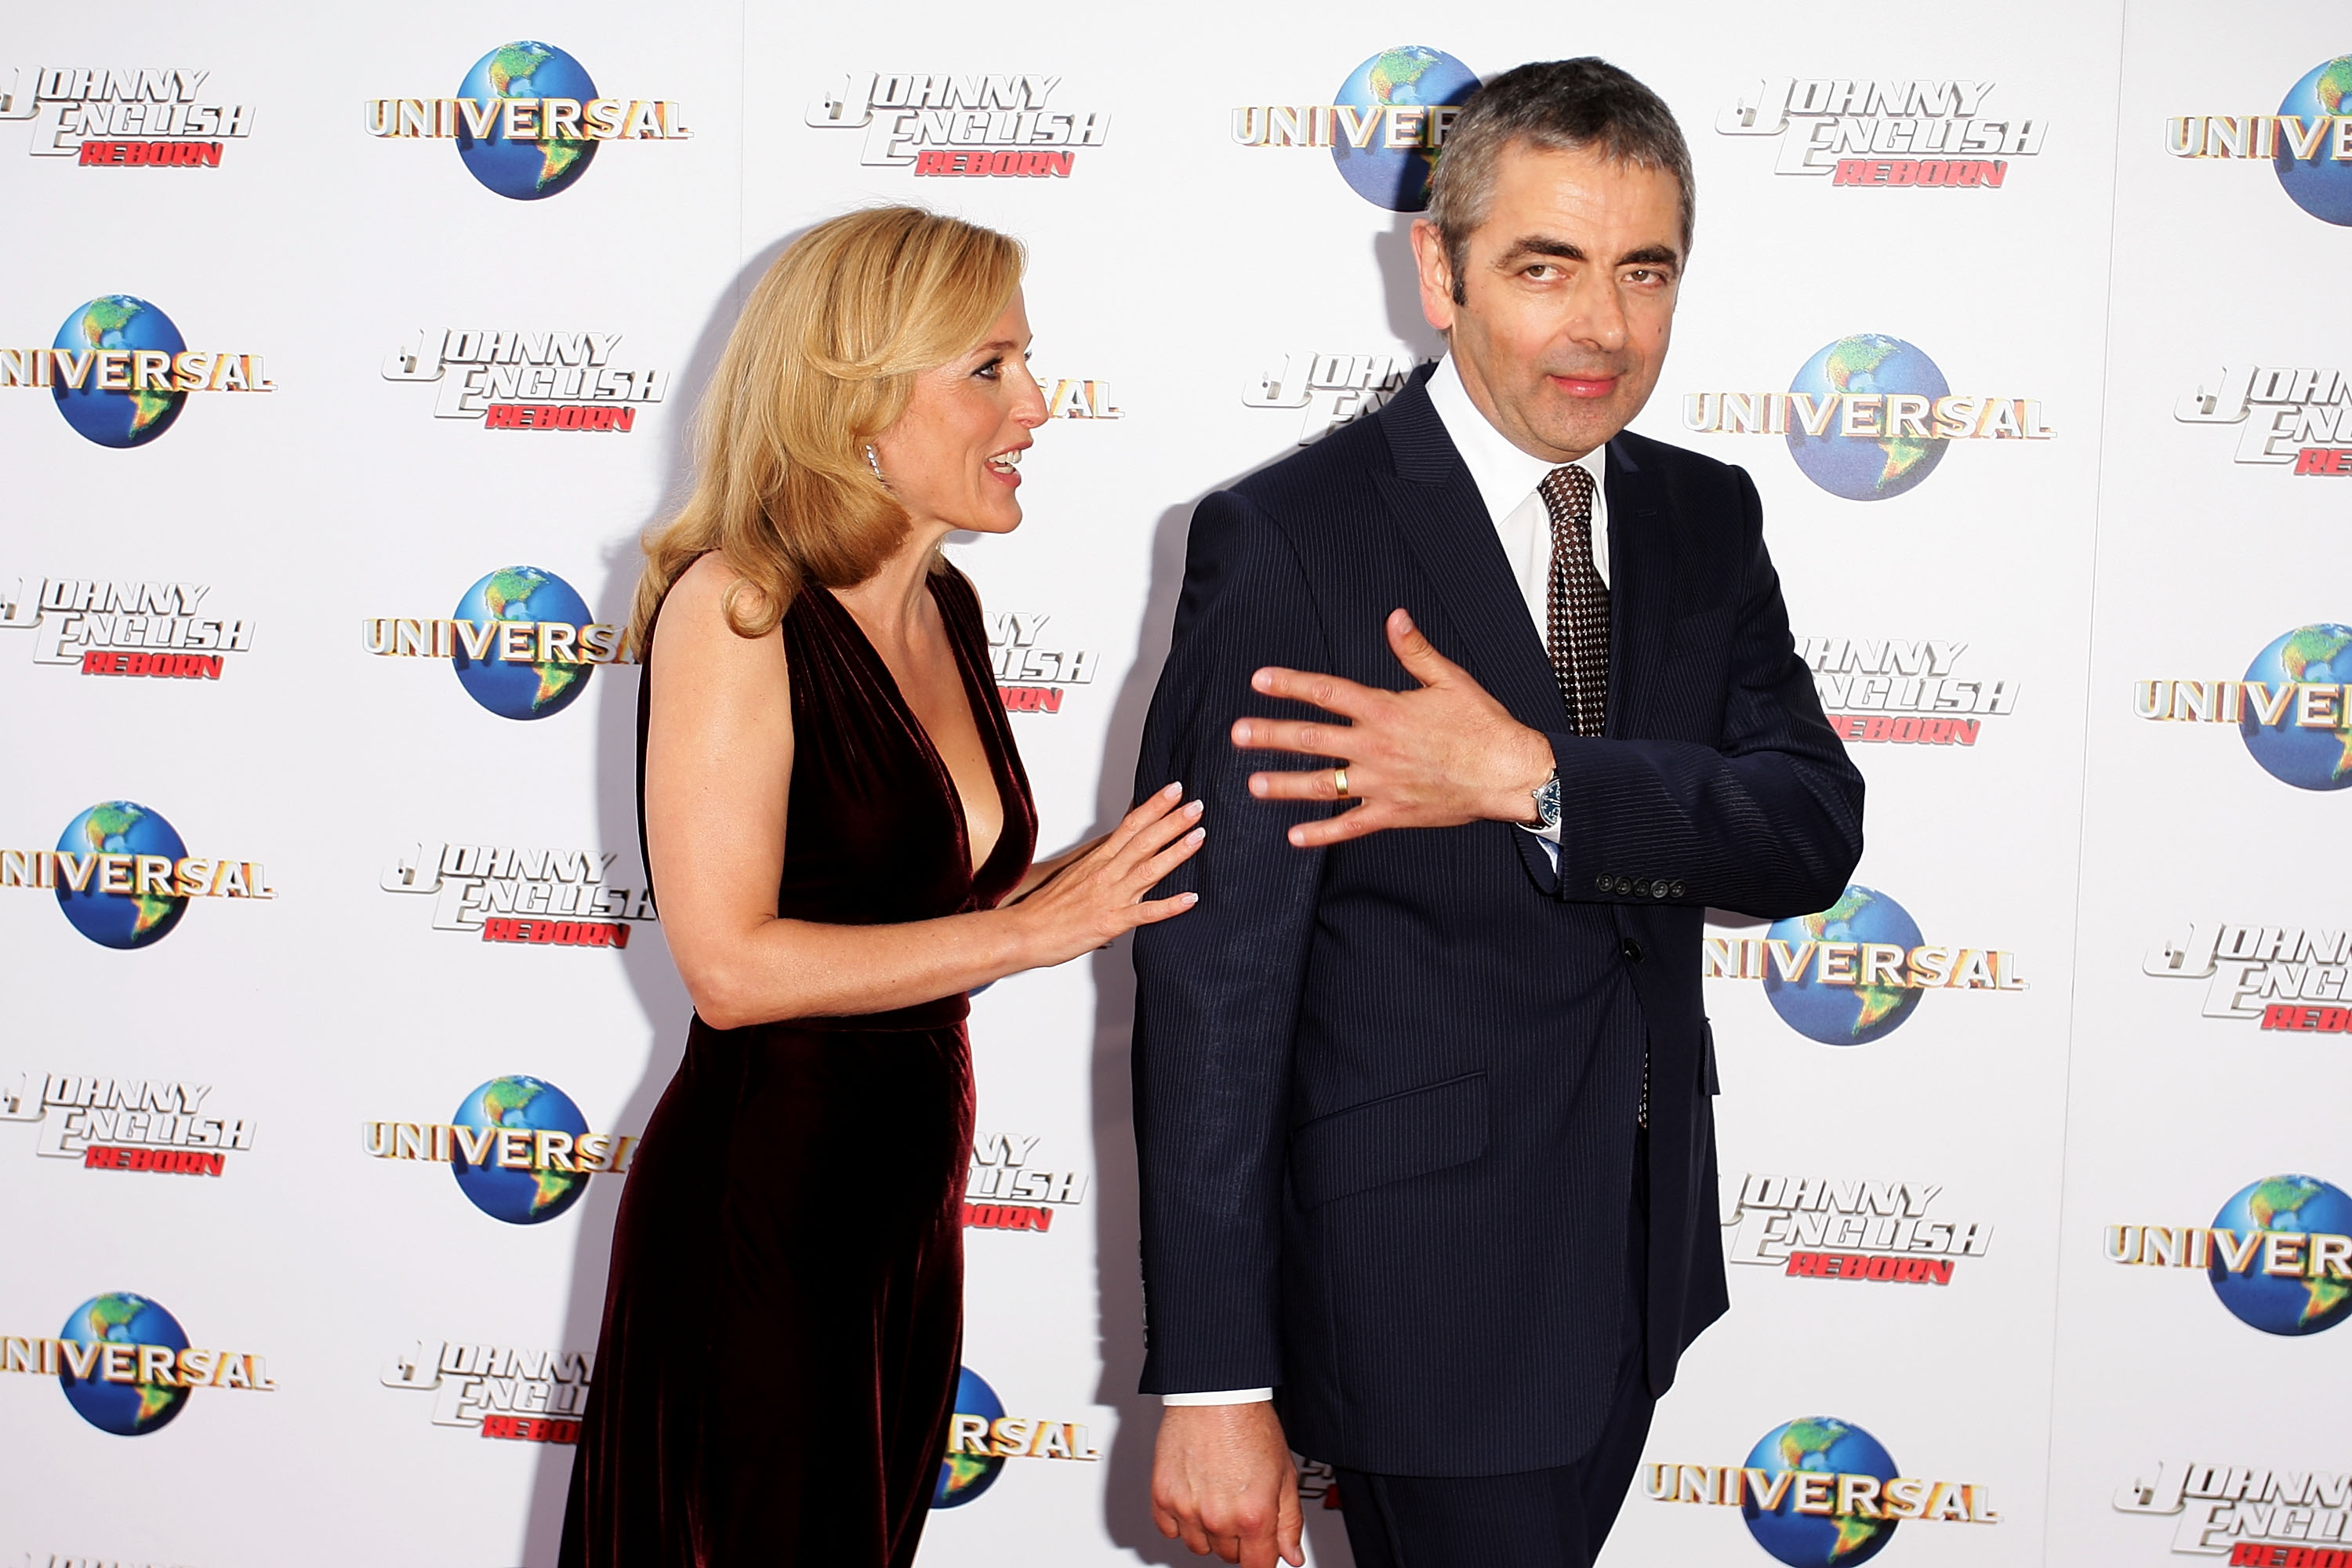 Gillian Anderson and Rowan Atkinson